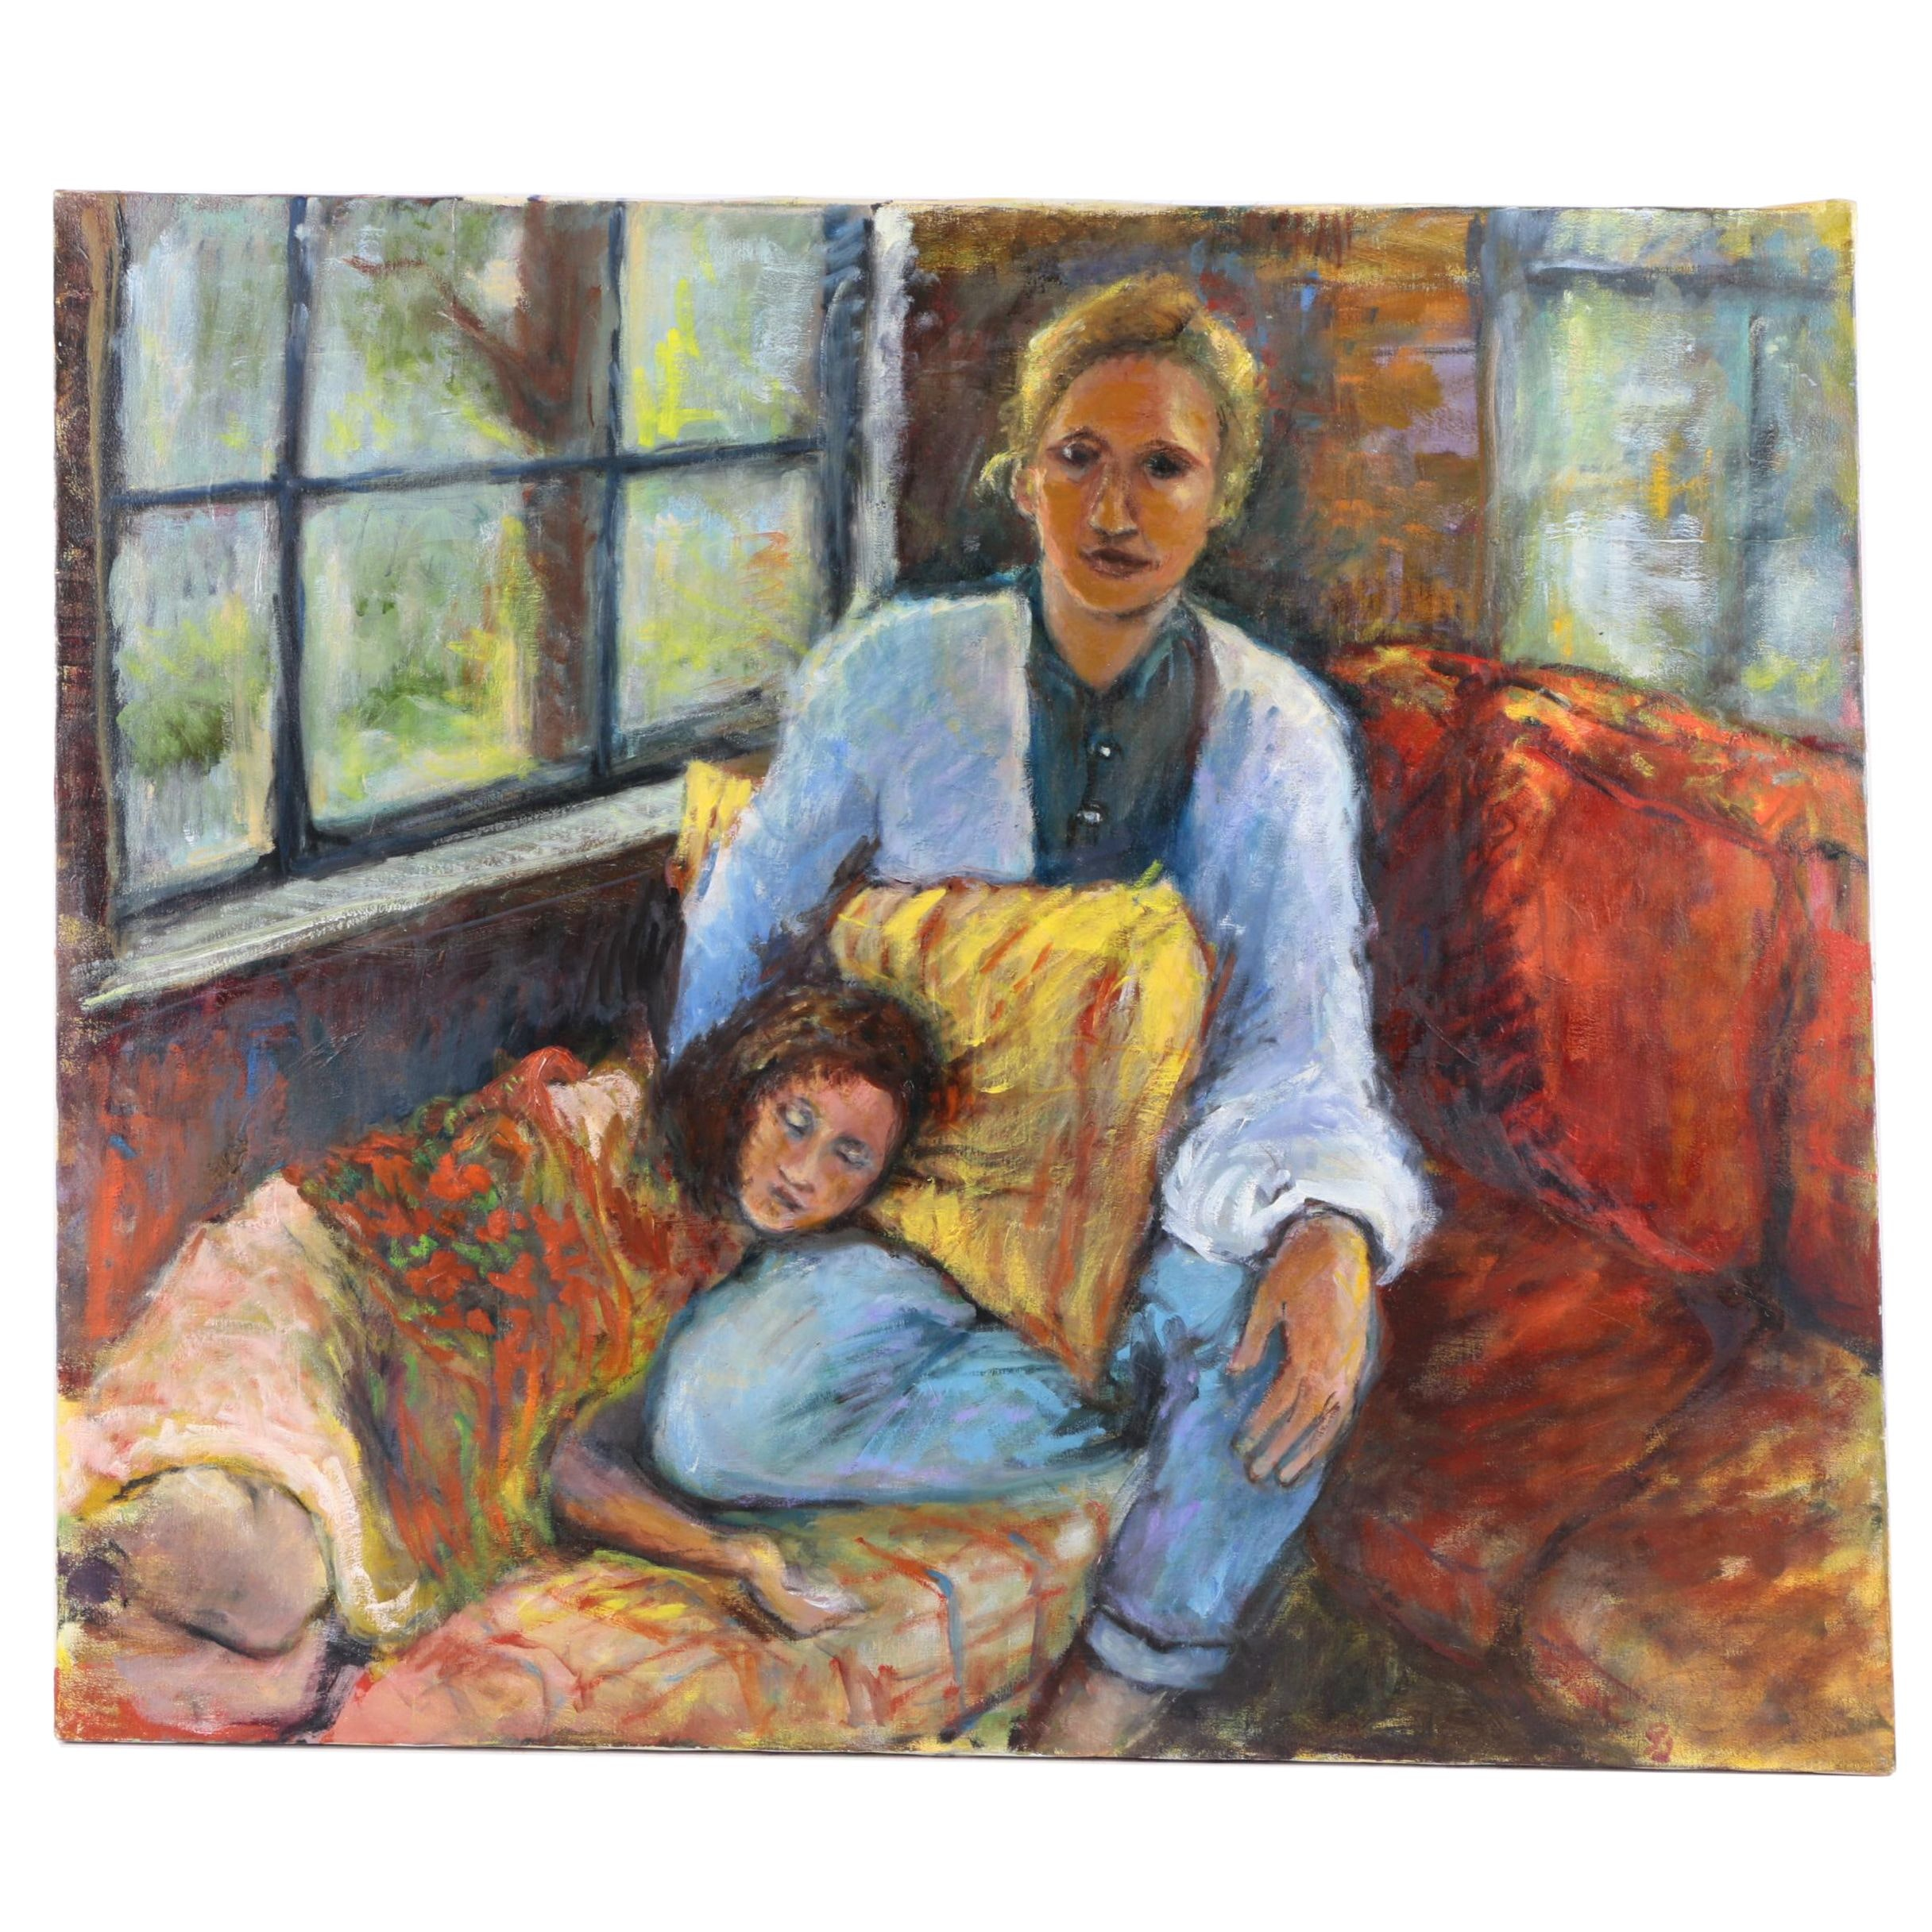 Eloe Woolf-Laiken Oil Painting of a Mother and Child